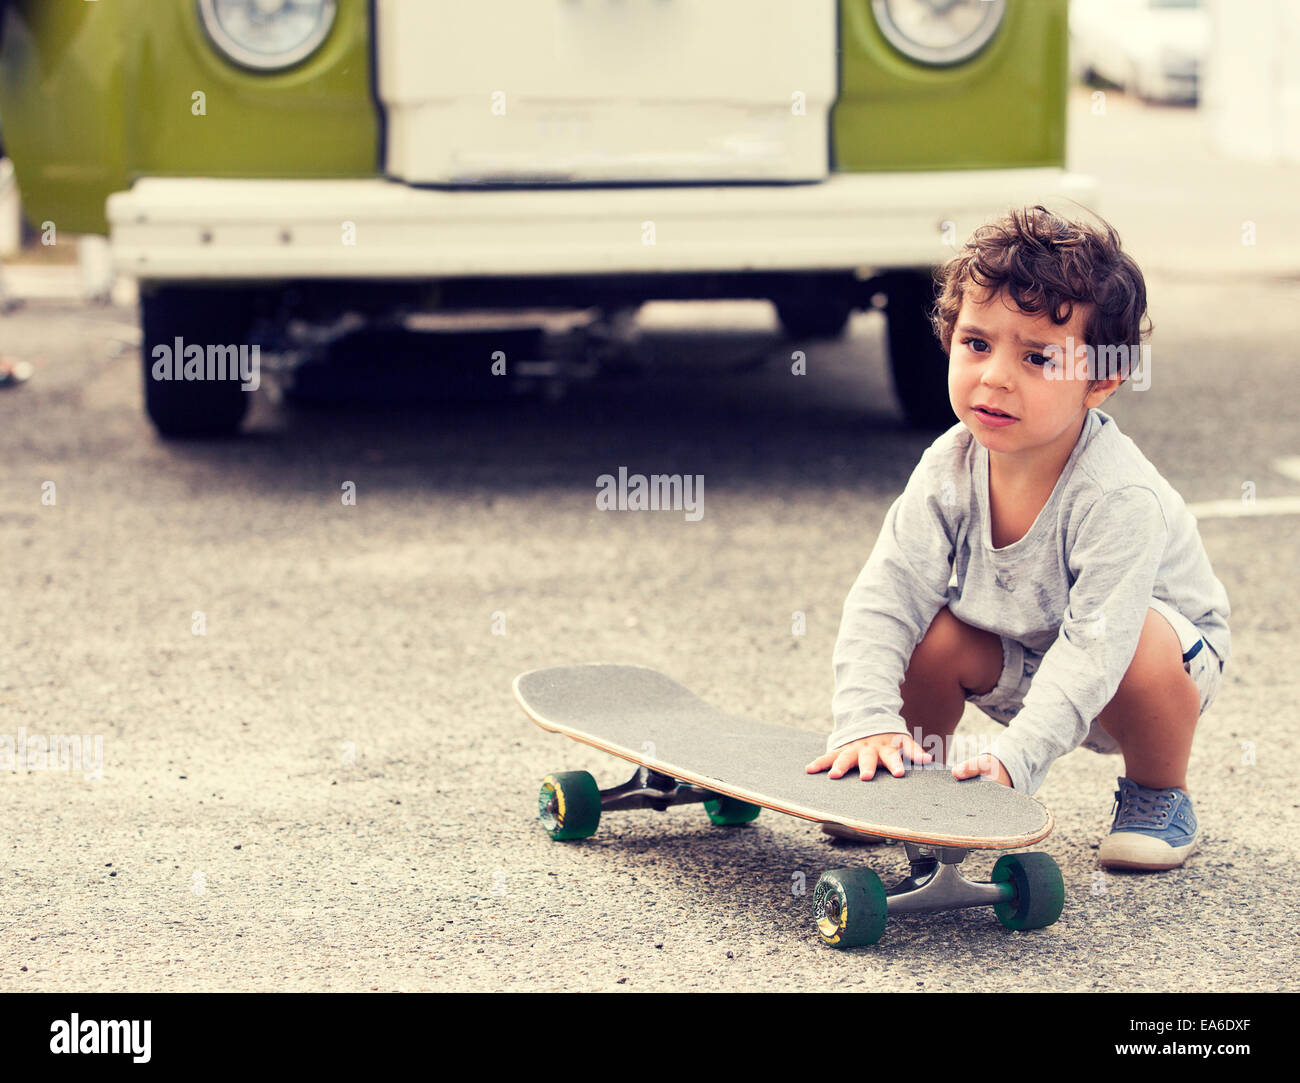 Child with skateboard and van - Stock Image